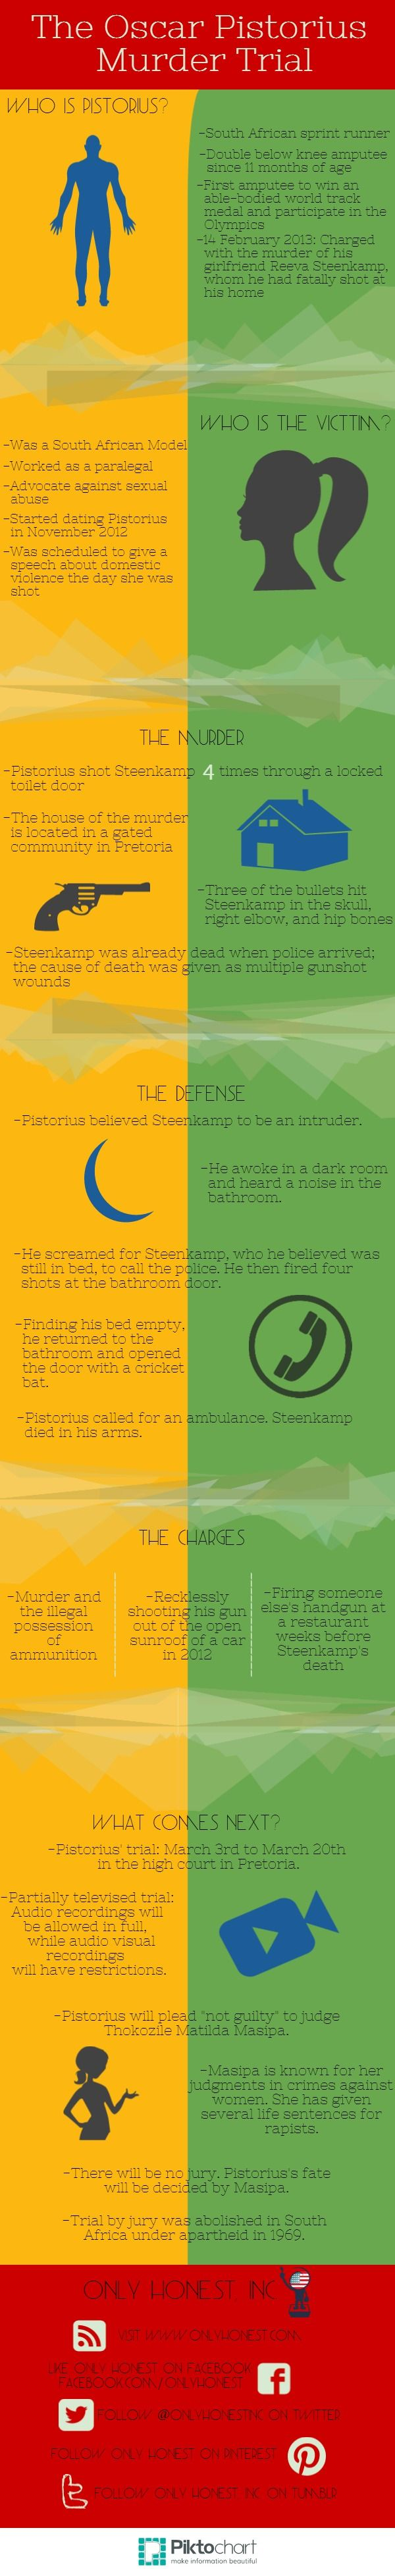 The Oscar #Pistorius #murder trial has begun. Refresh your memory of the details of the case with this #infographic! #politics #OnlyHonest